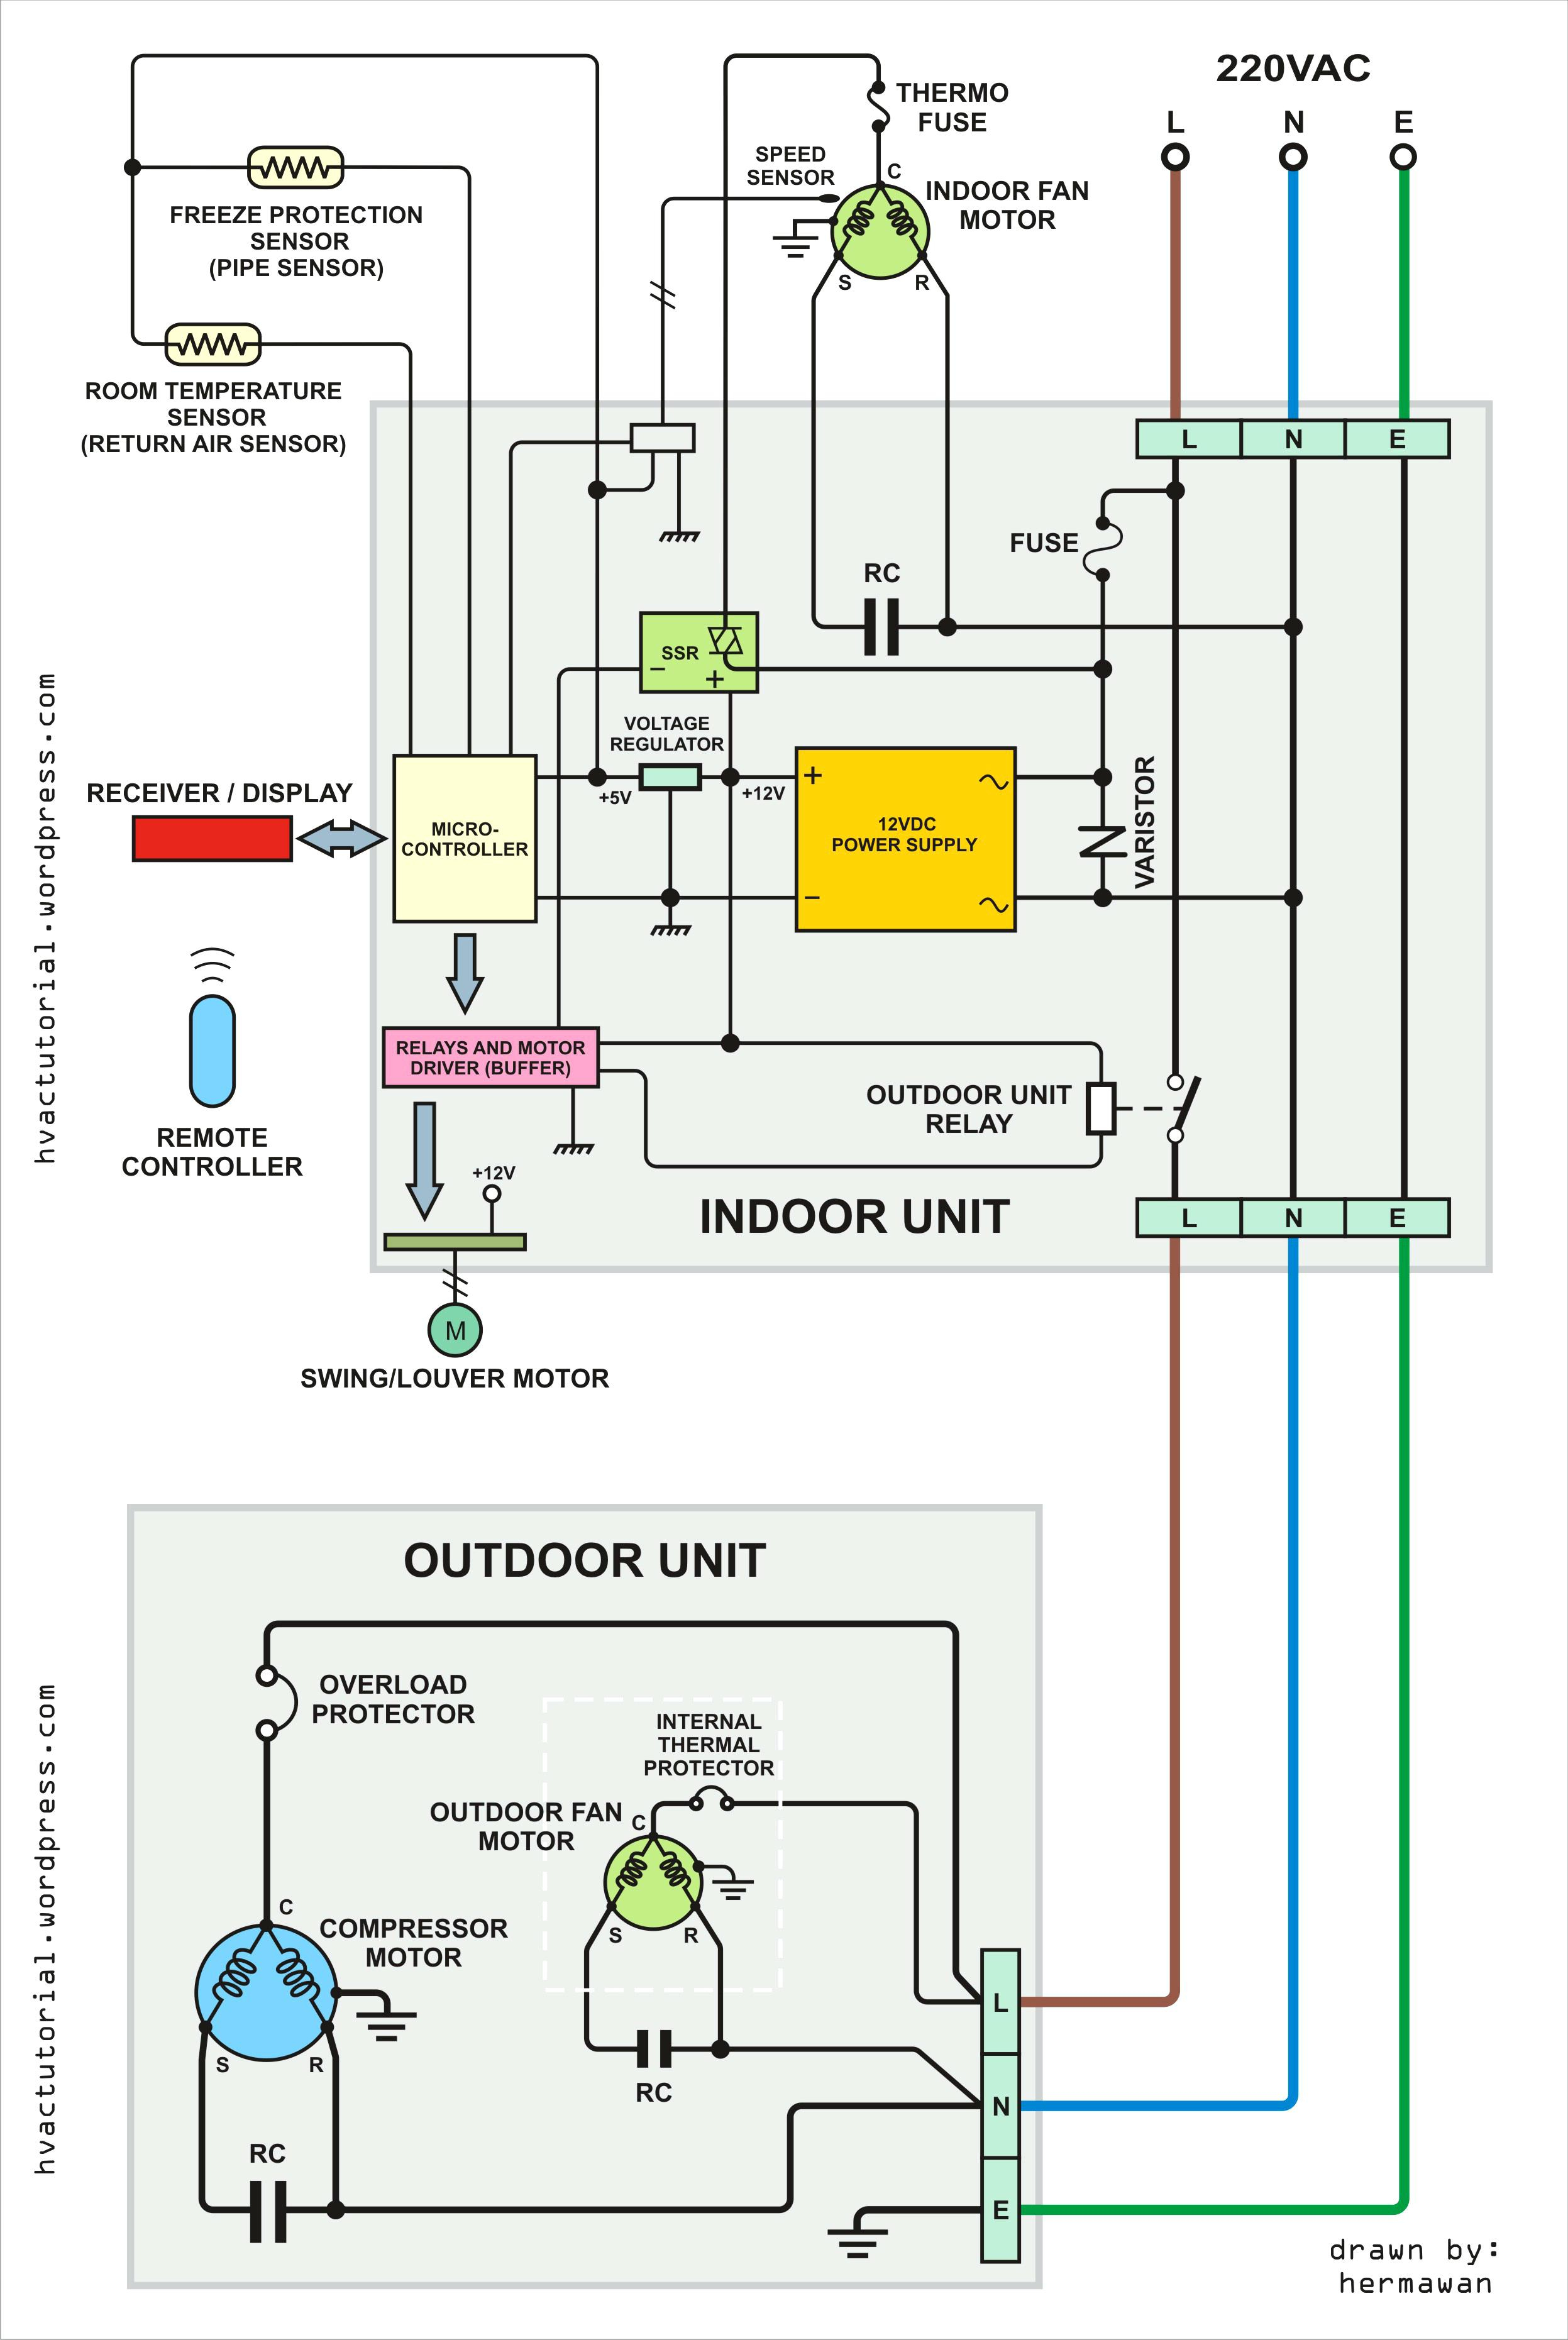 Schematic Of Bryant Gas Furnace Wiring Diagram - Wiring Diagram Data - Oil Furnace Wiring Diagram